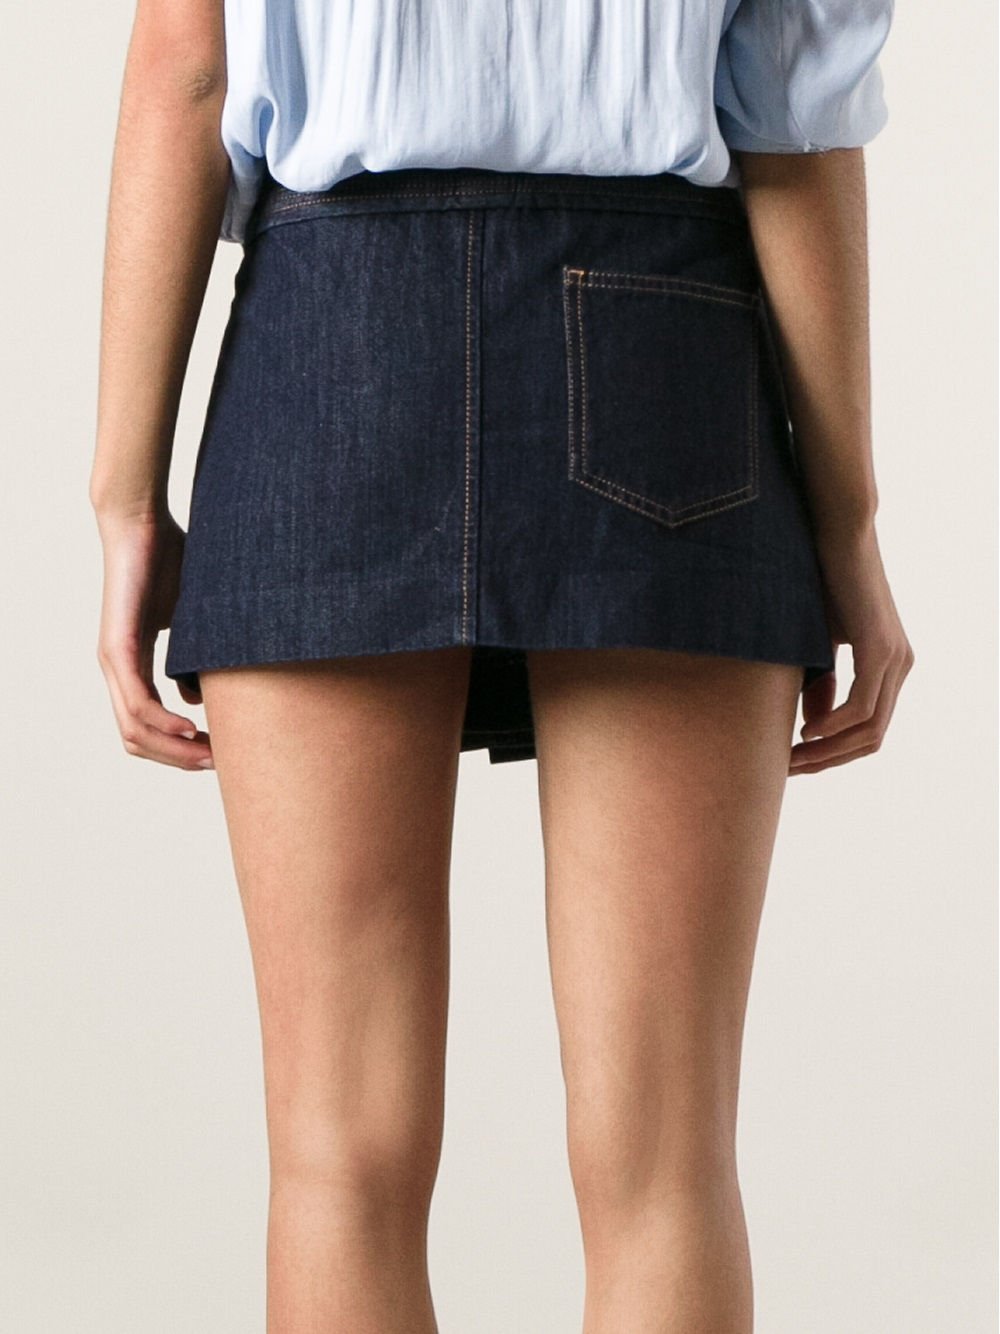 Étoile isabel marant Pleated Denim Mini Skirt in Blue | Lyst